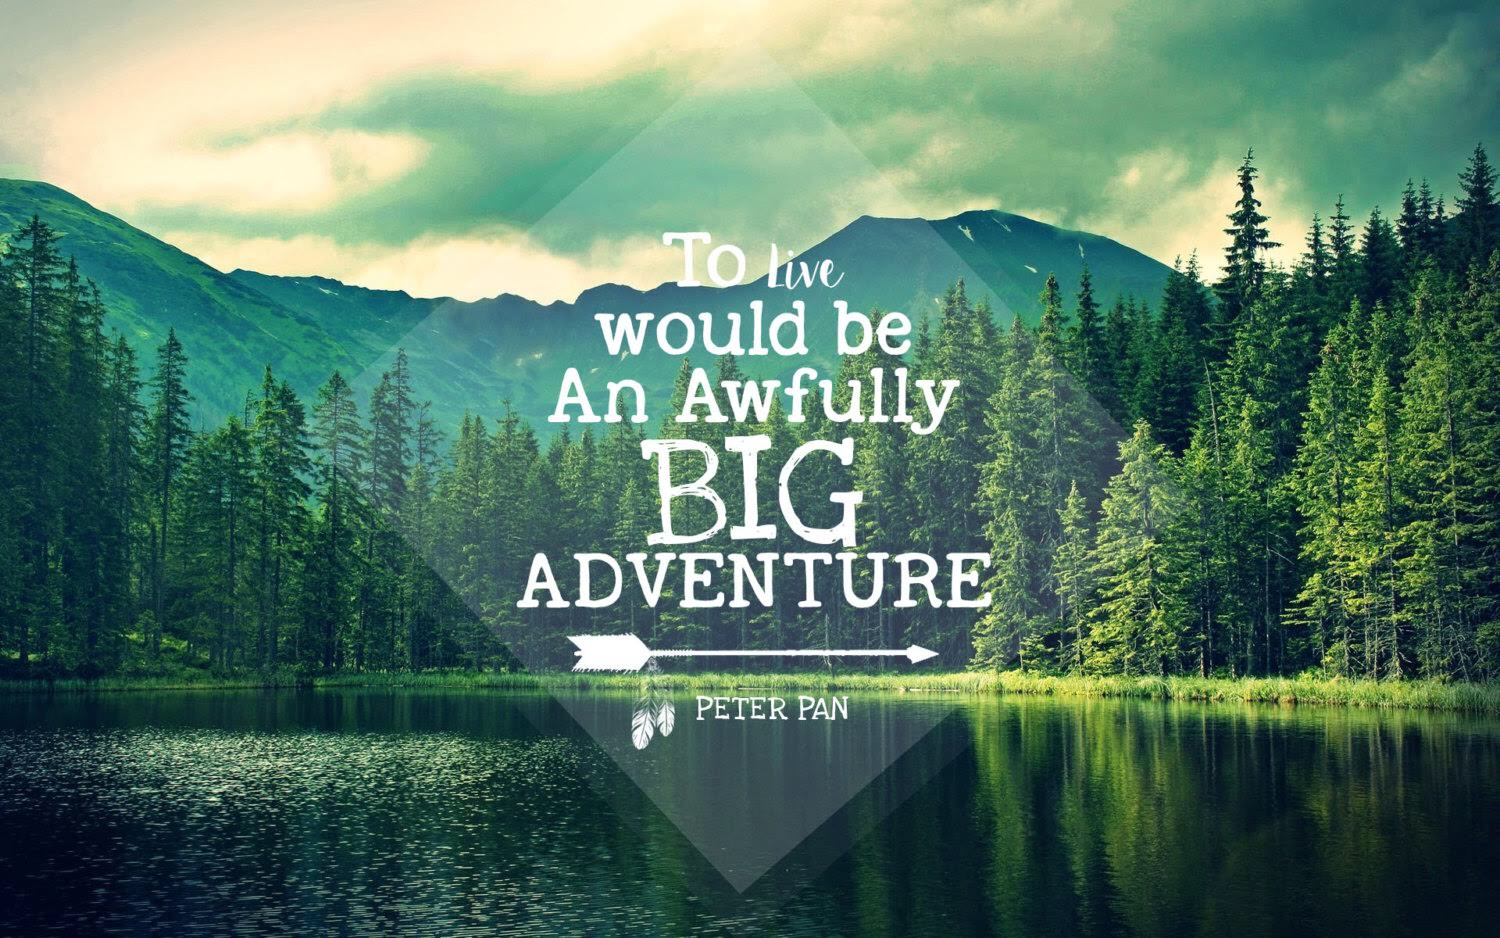 John Muir Quotes Wallpaper To Live Would Be An Awfully Big Adventure Peter Pan